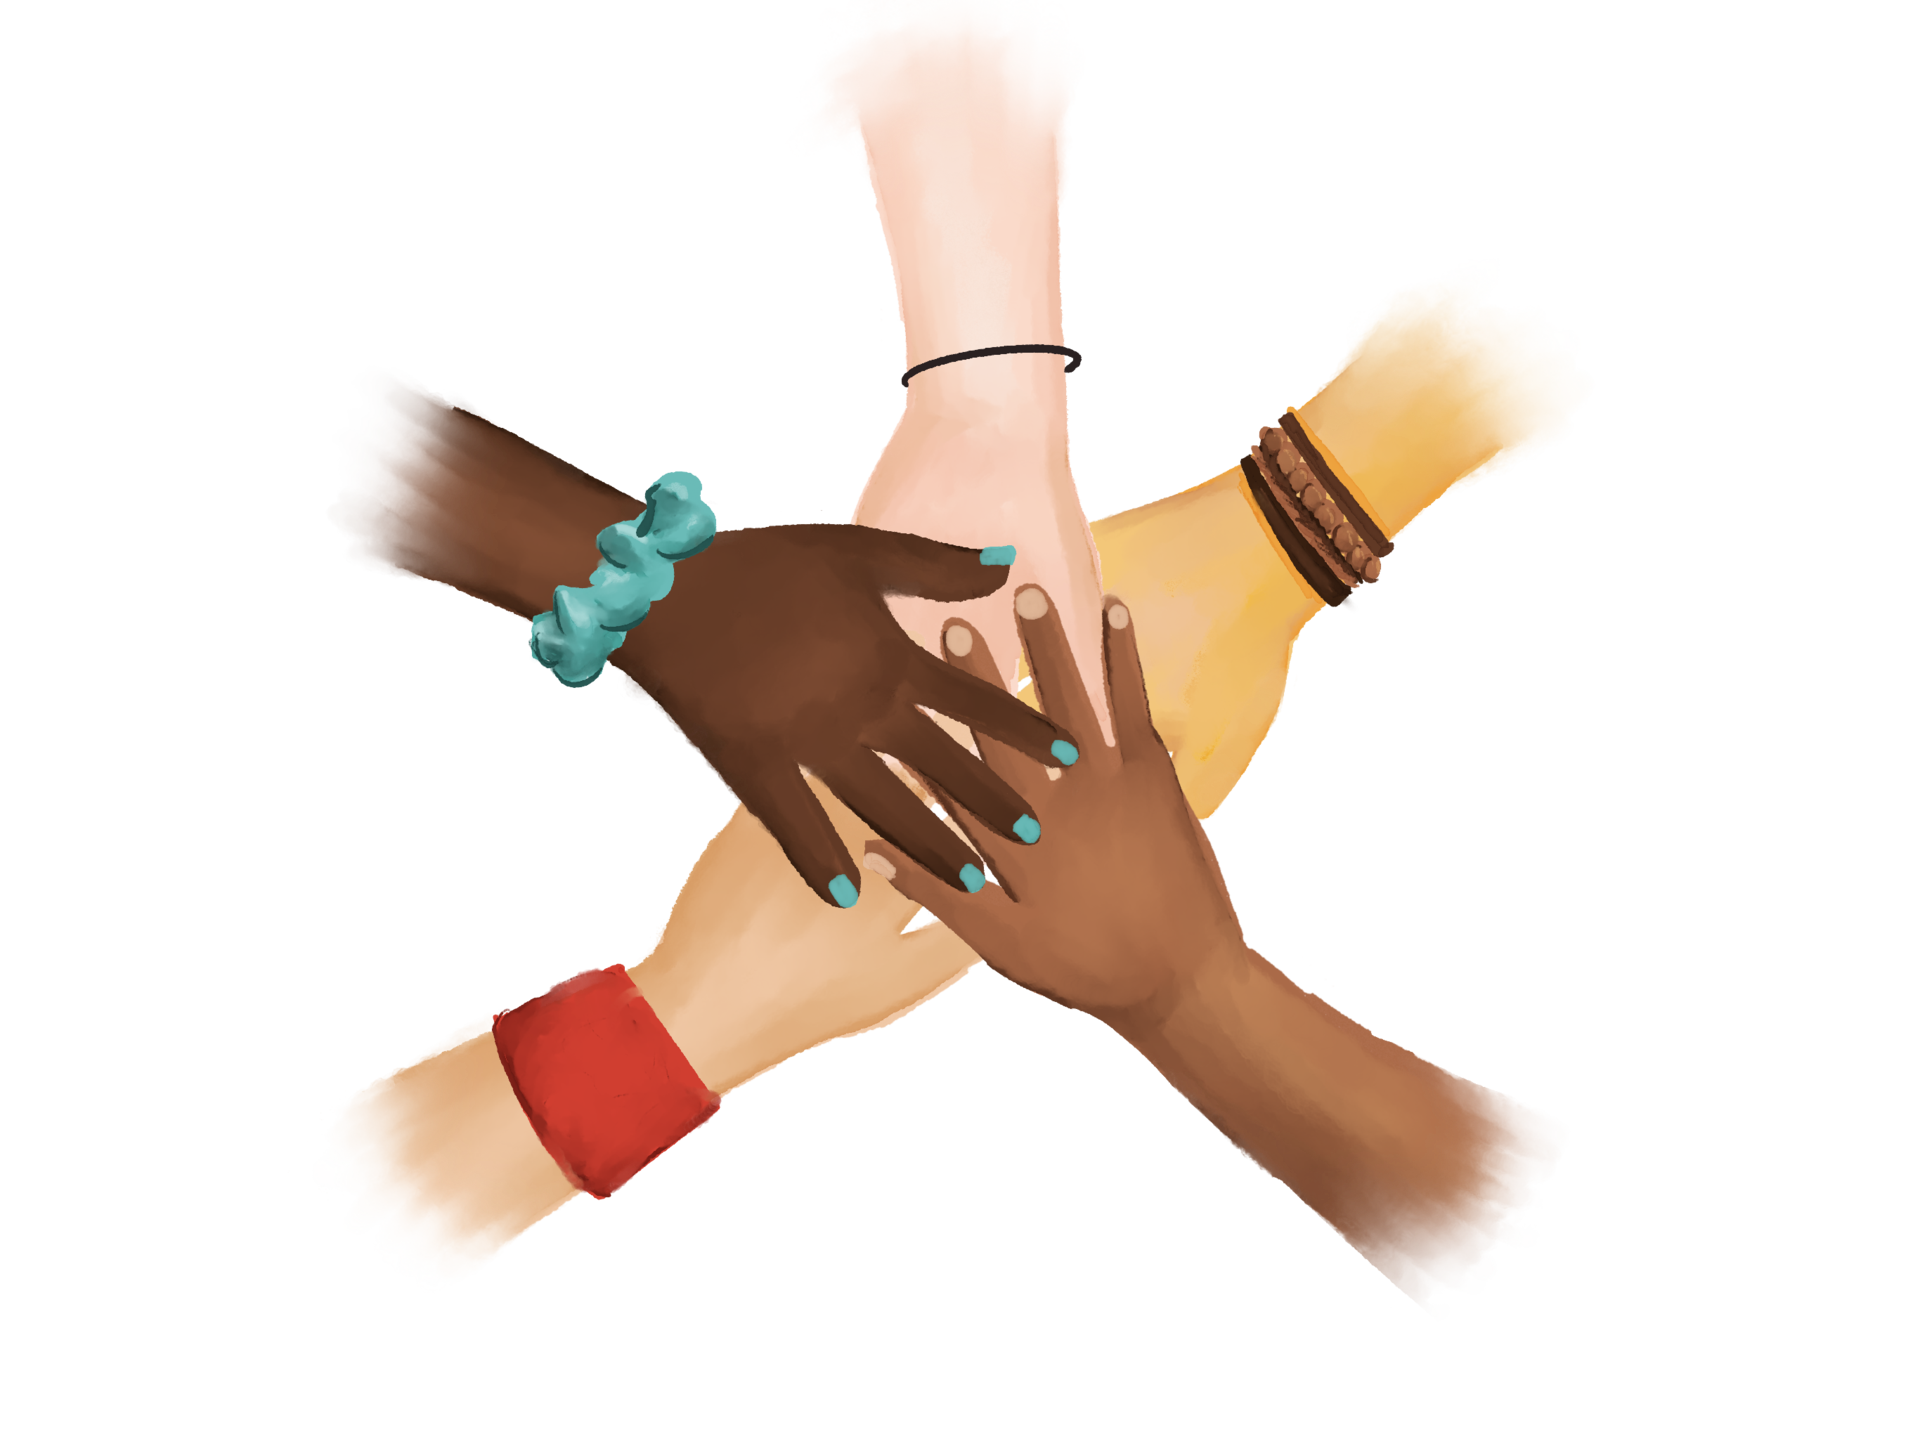 all hands in graphic